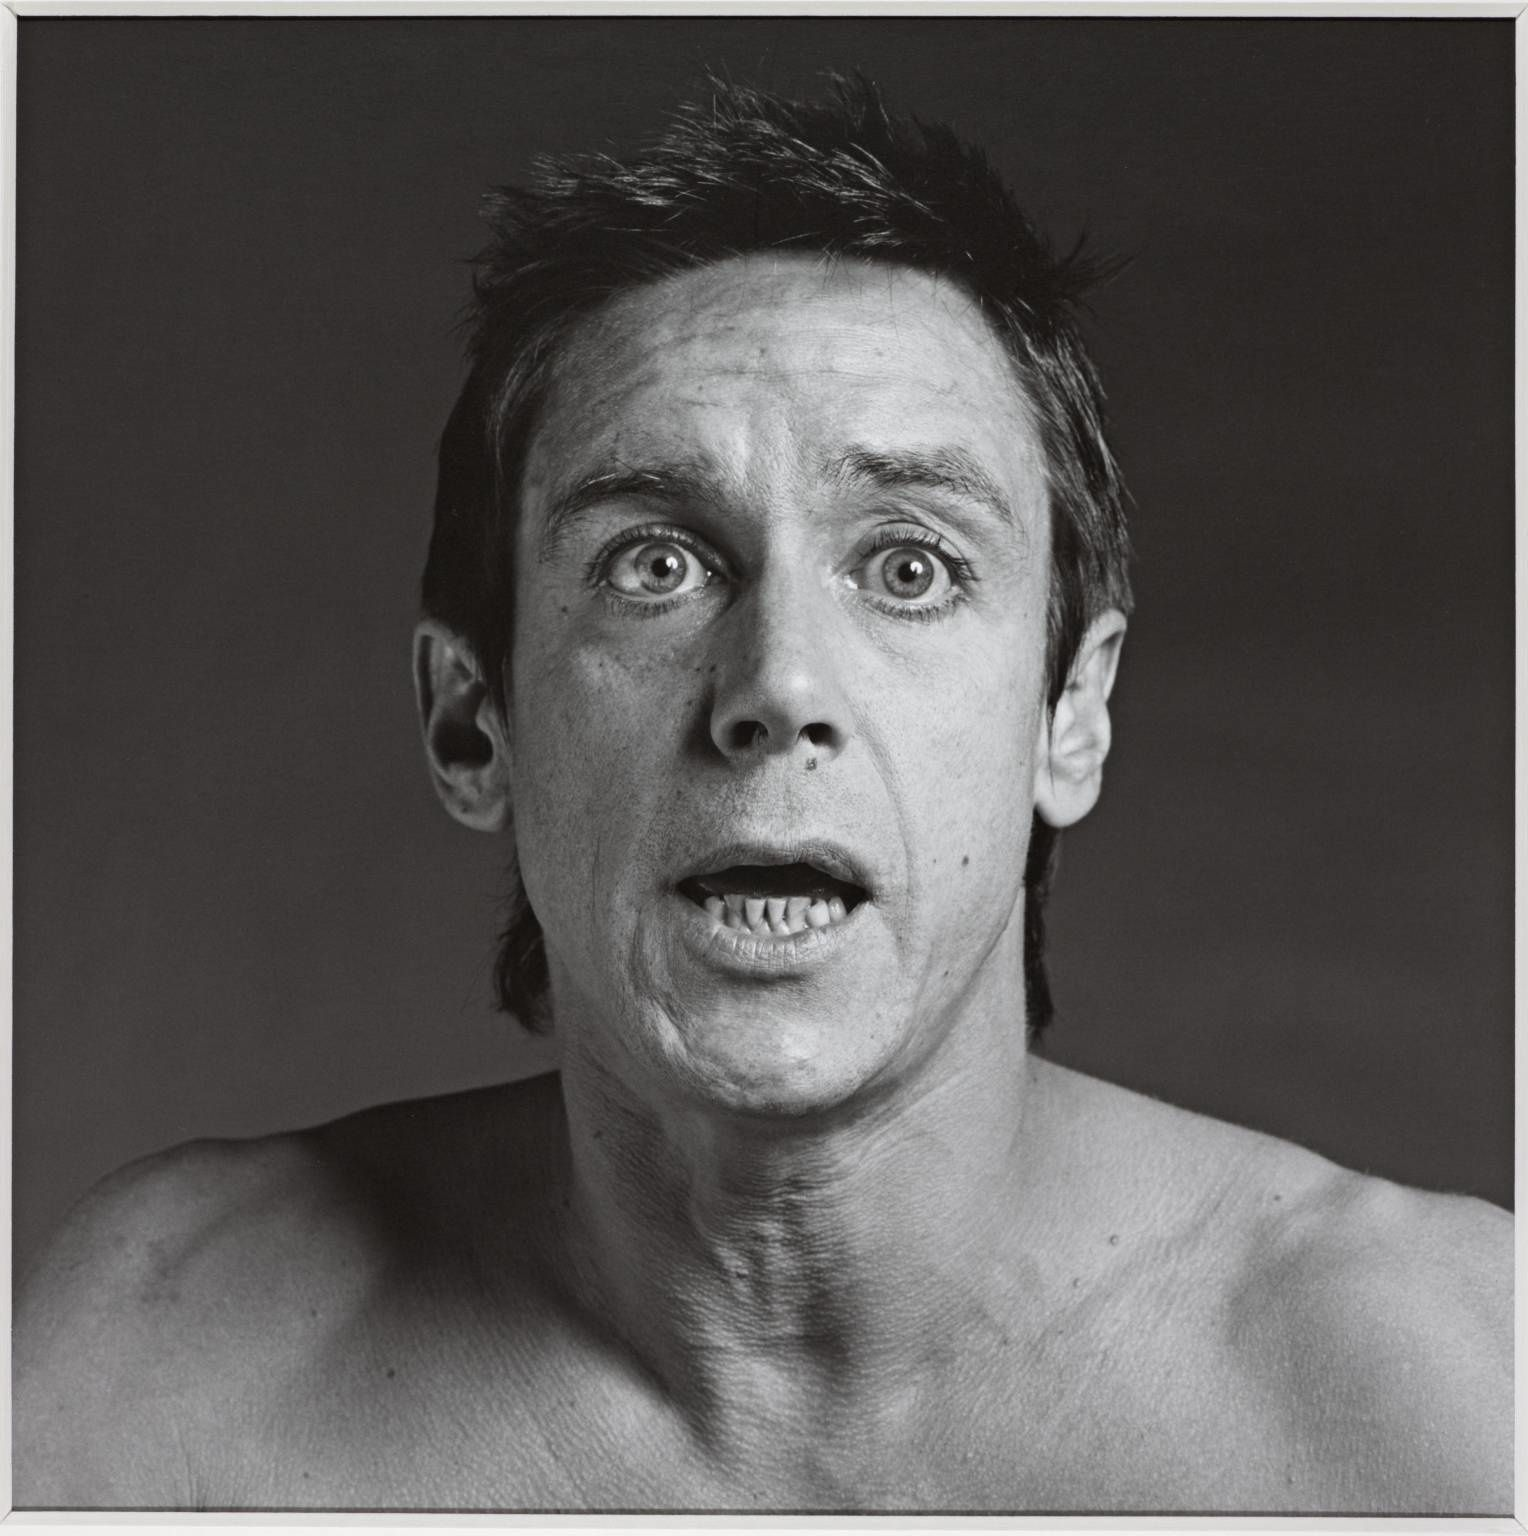 Iggy Pop, 1981 - credit: Robert Mapplethorpe